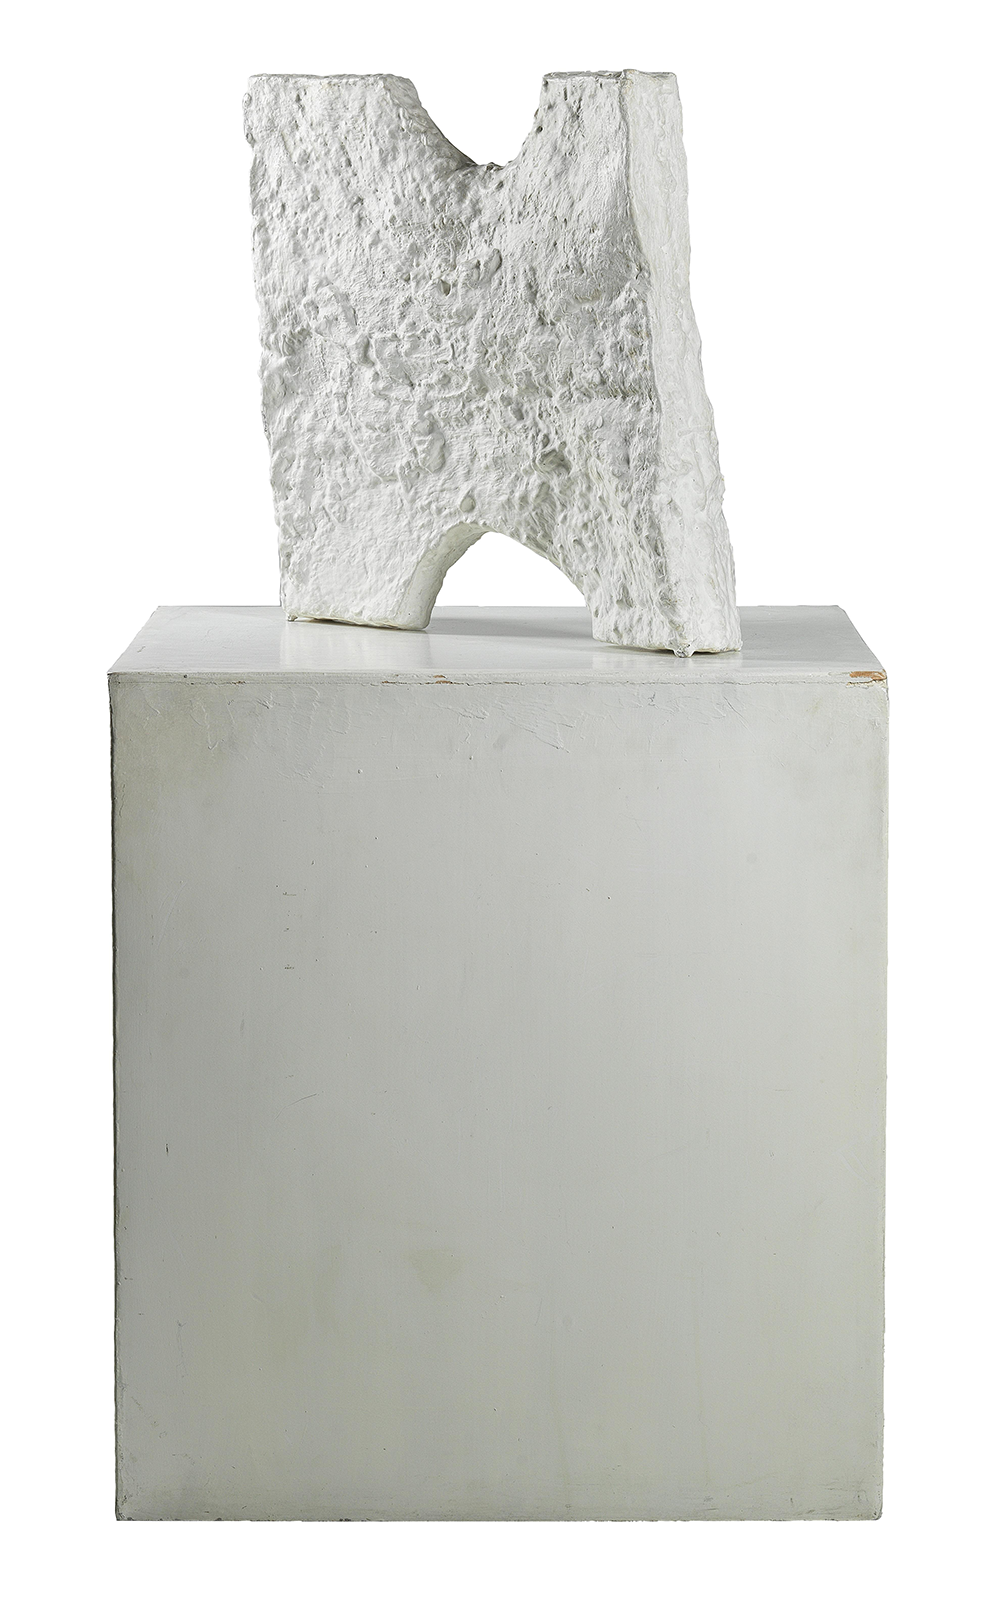 Franz West (1947-2012), BI 4 (Paßstück), 1990, titled with stencil (?) BI 4 (Biennale Paßstück 4 of 11 exhibited), painted aluminium cast, 49 x 50 x 10 cm, base 69 x 60 x 63 cm, estimate €70,000 – 100,000